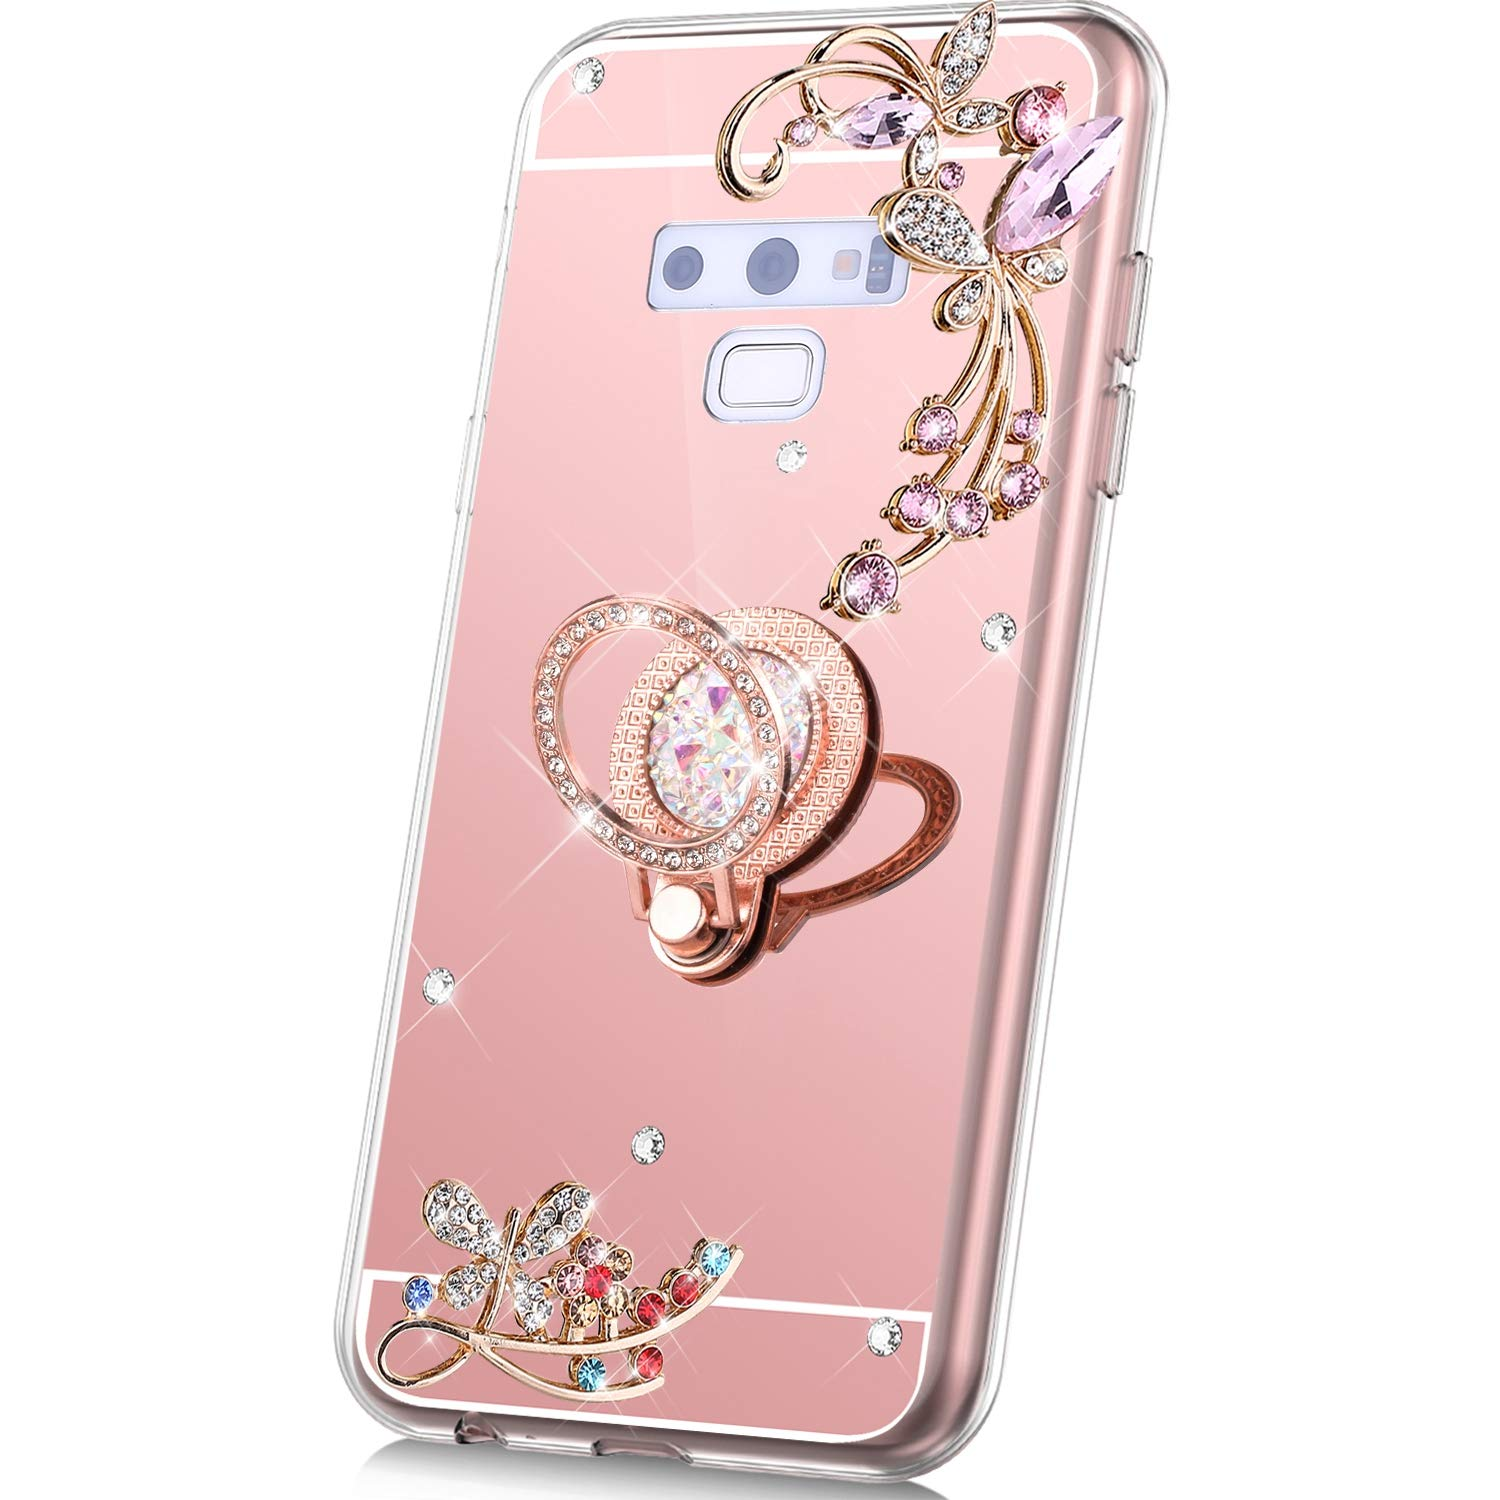 PHEZEN Case for Samsung Galaxy Note 9 Mirror Case,Bling Glitter Flowers Sparkle Rhinestone Mirror Back TPU Silicone Case Cover with Ring Kickstand Diamond Crystal Case for Galaxy Note 9,Rose Gold by PHEZEN